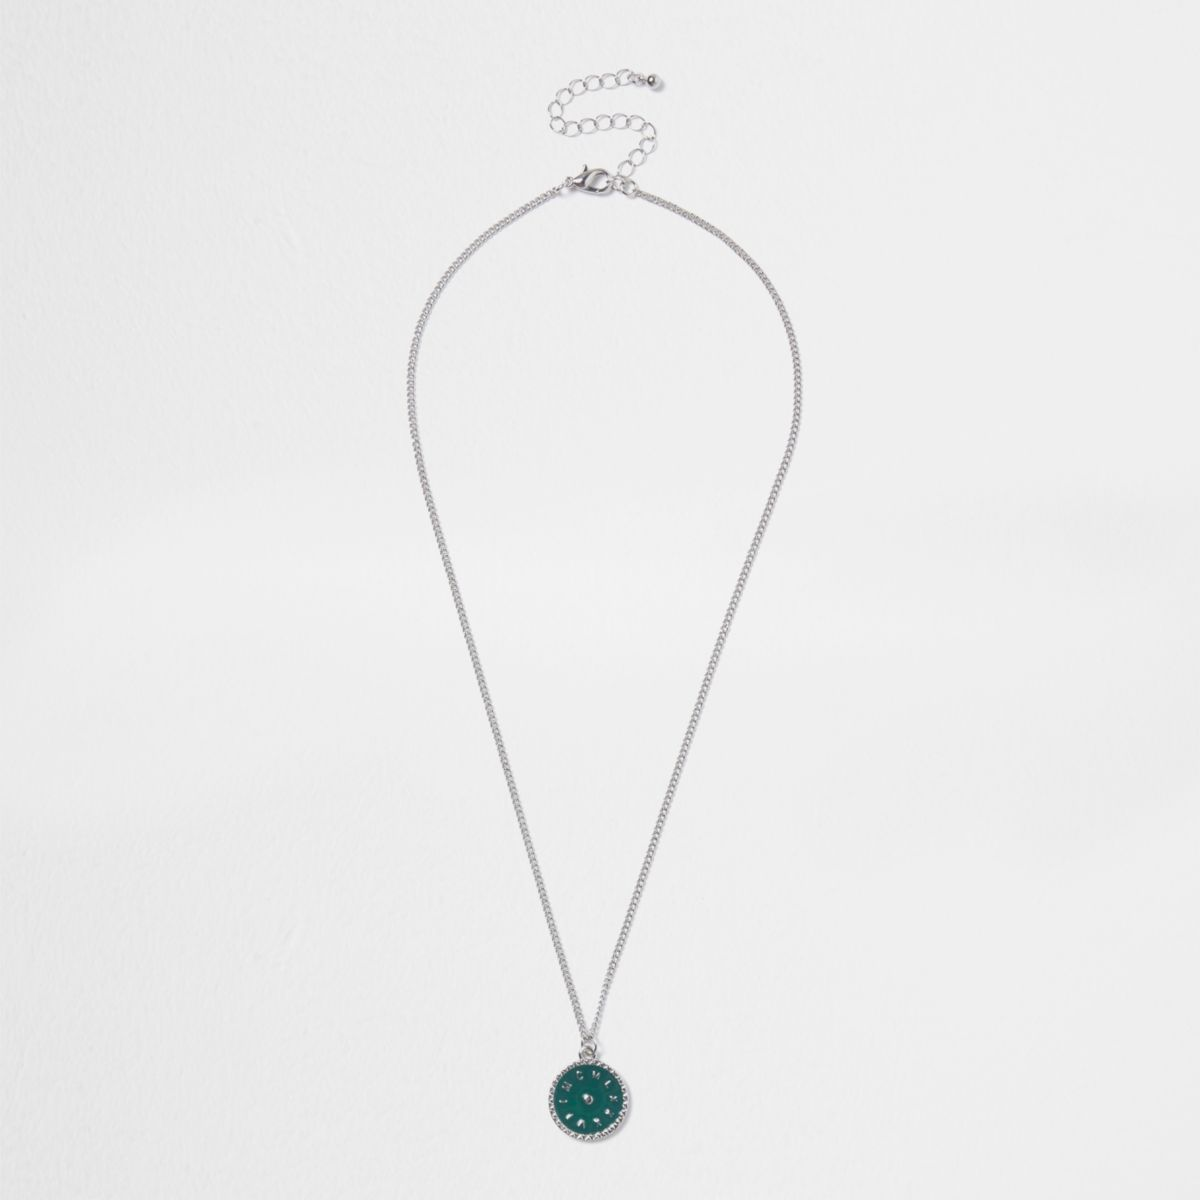 Silver tone green disc pendant necklace